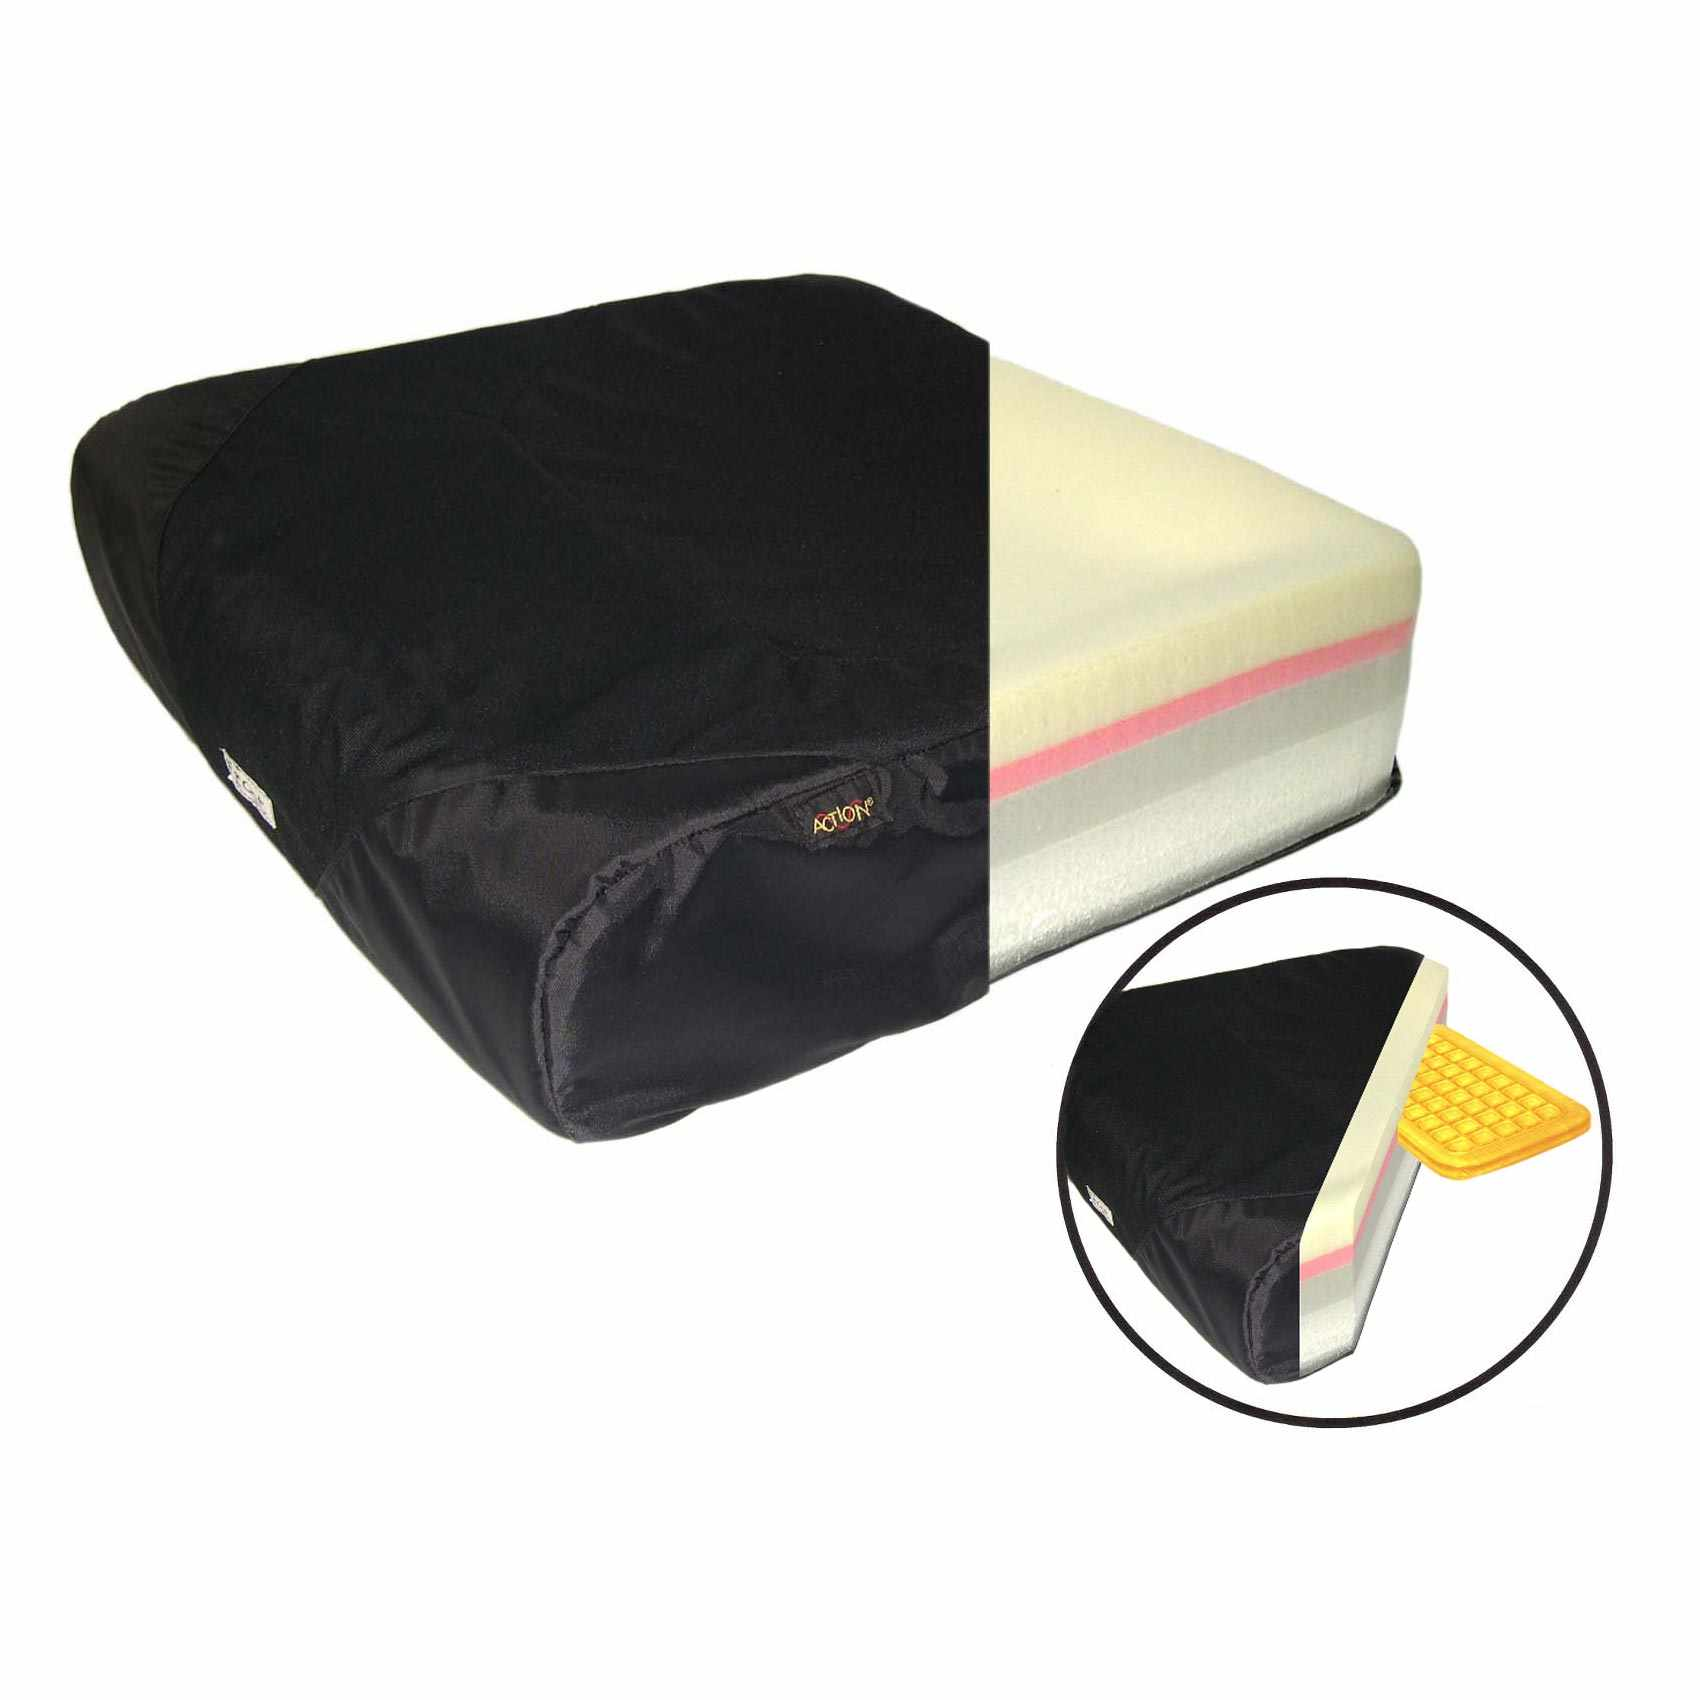 Action Products Xact soft cushion